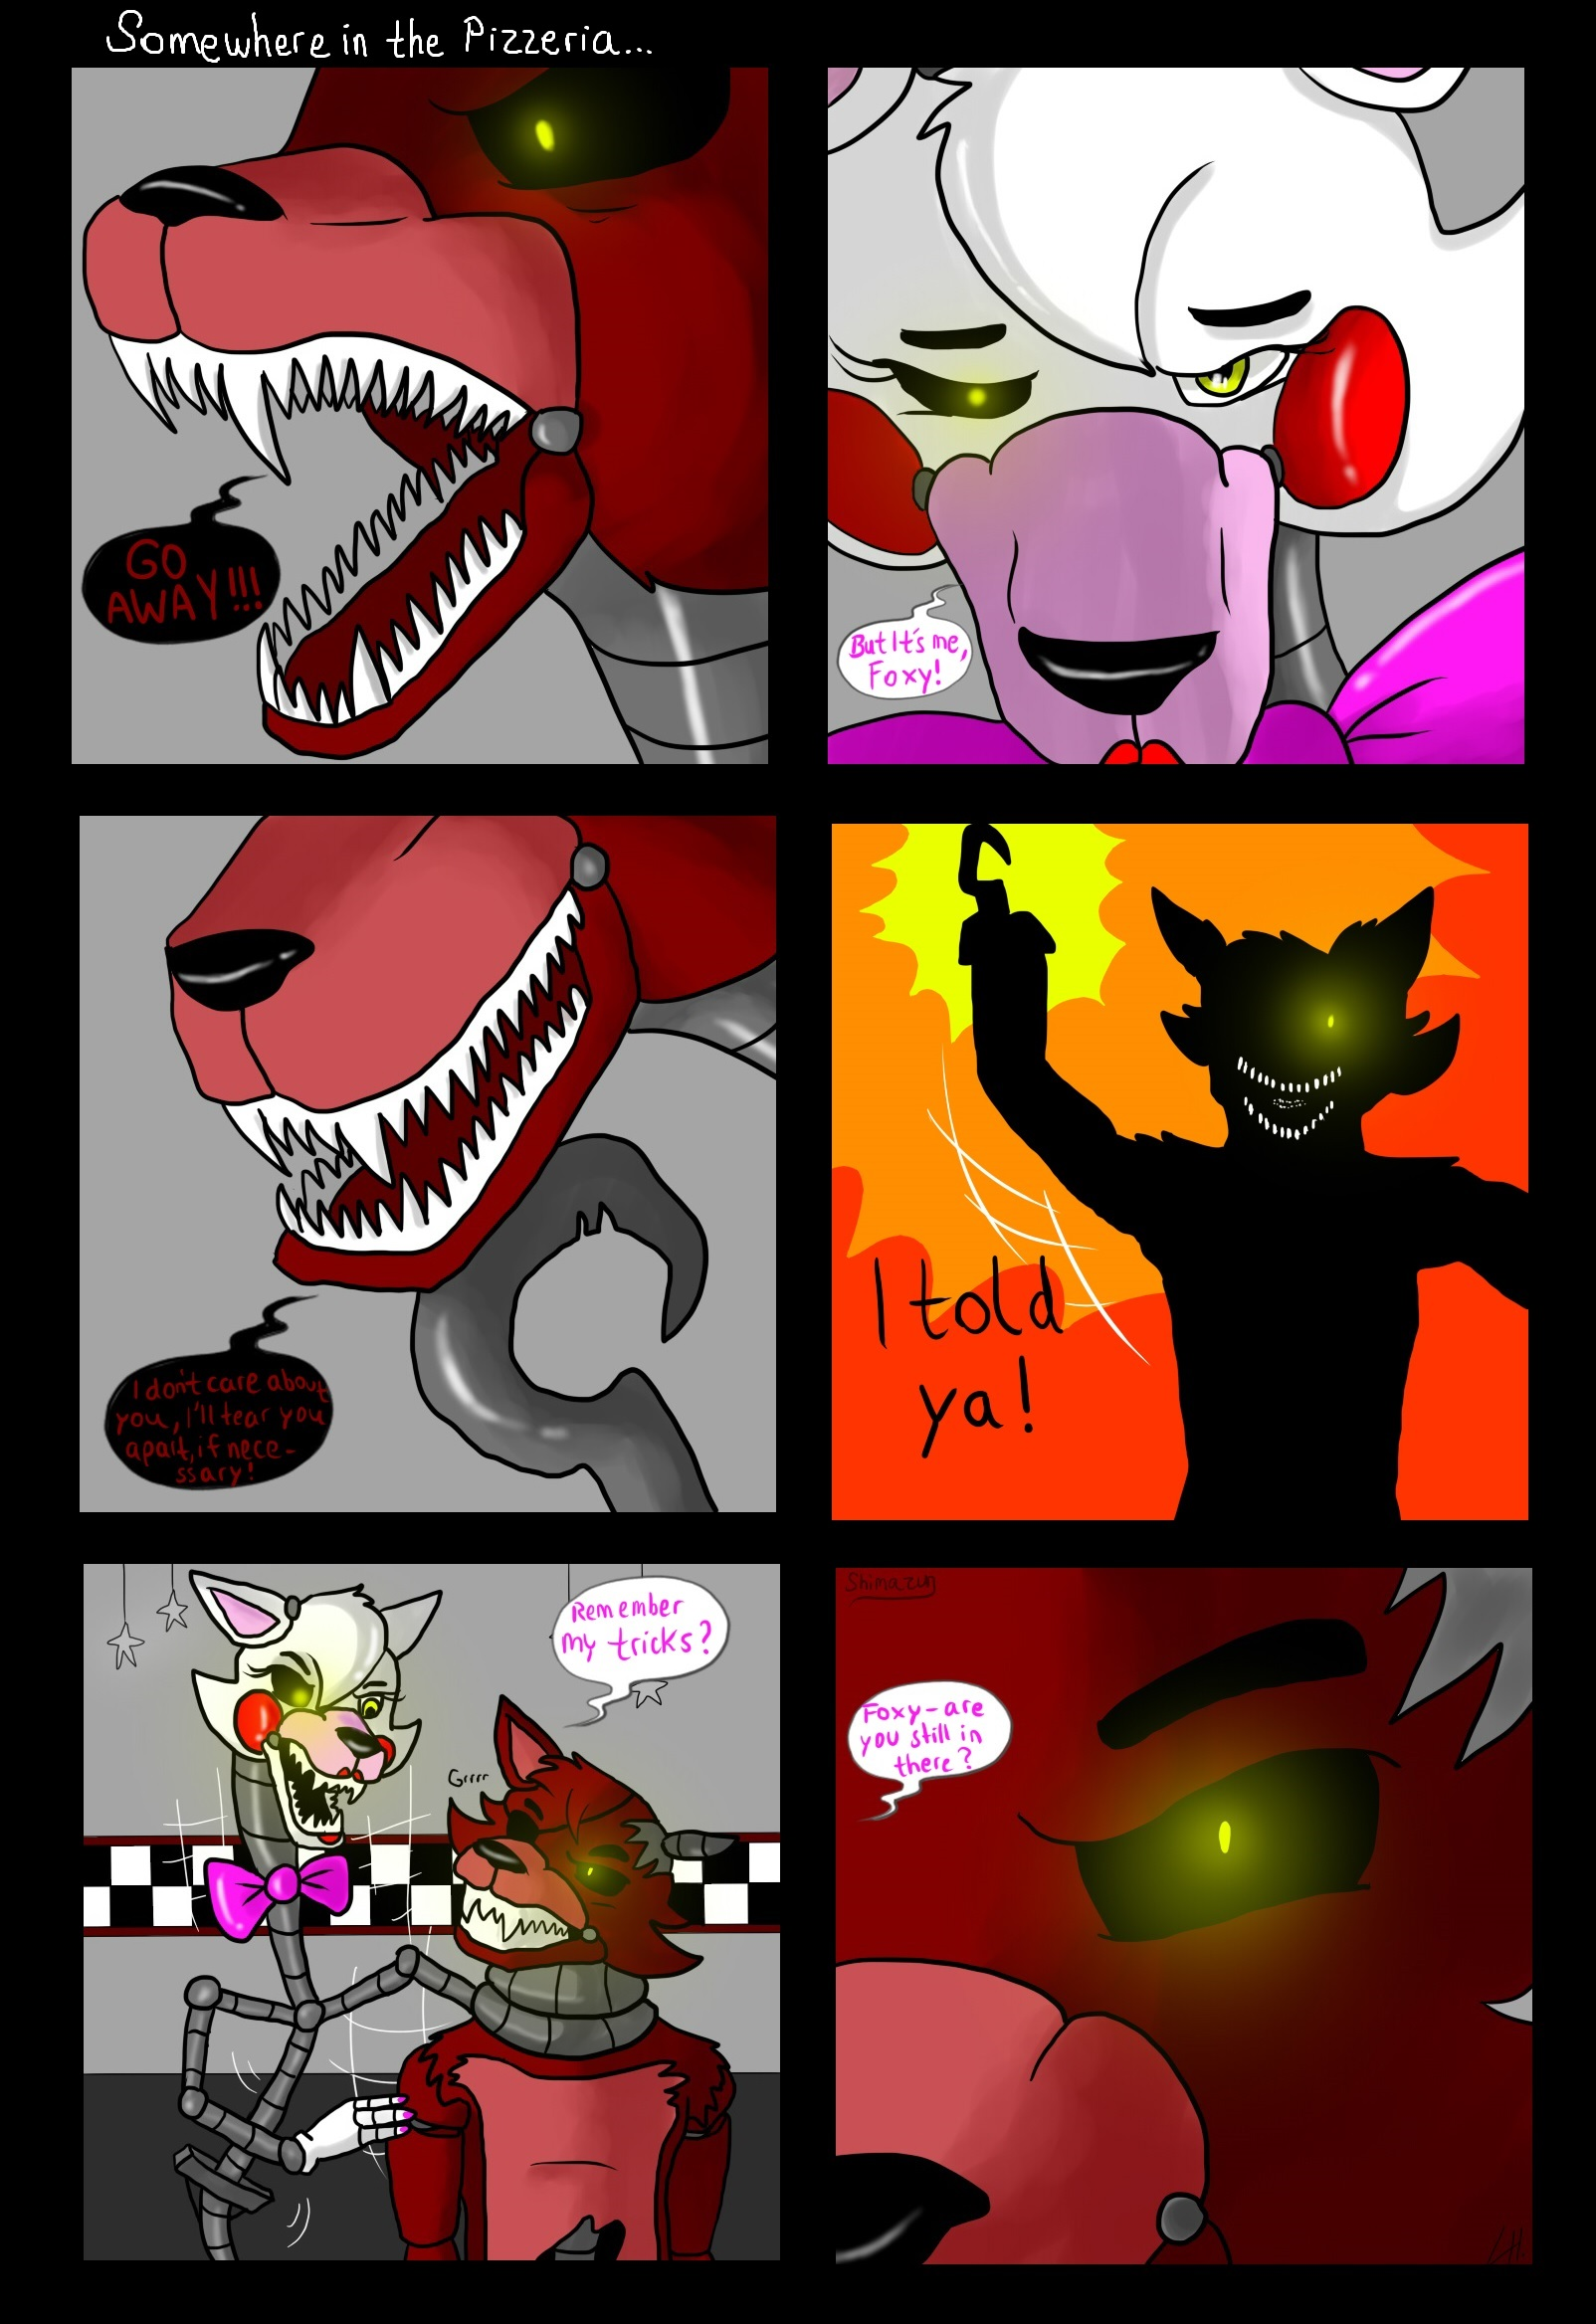 Fnaf comic good and bad ones part 18 by shimazun on deviantart